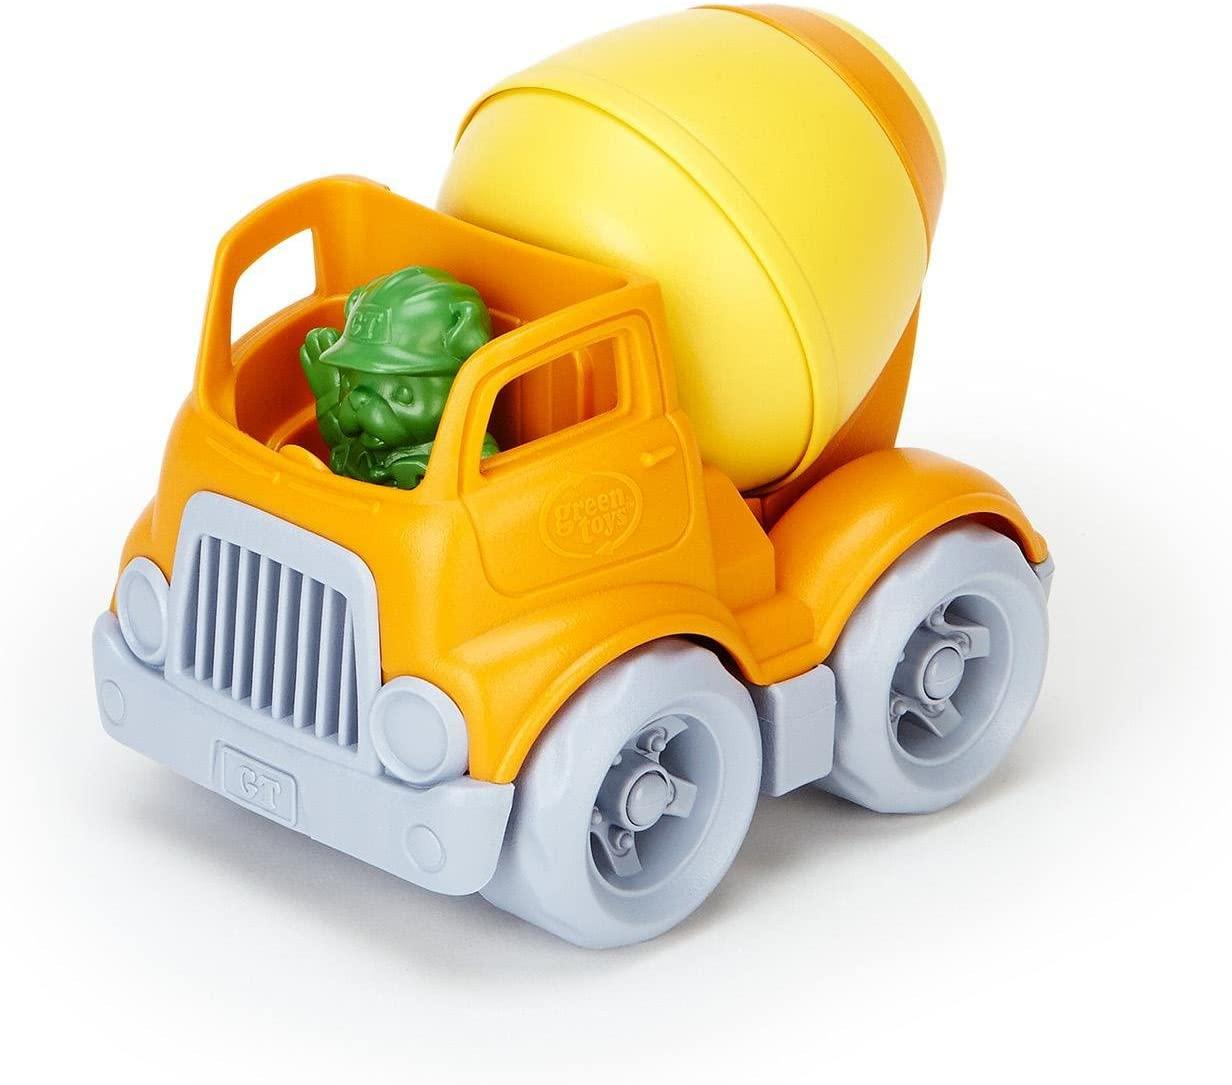 Green Toys Eco Friendly Mixer made from recycled plastic